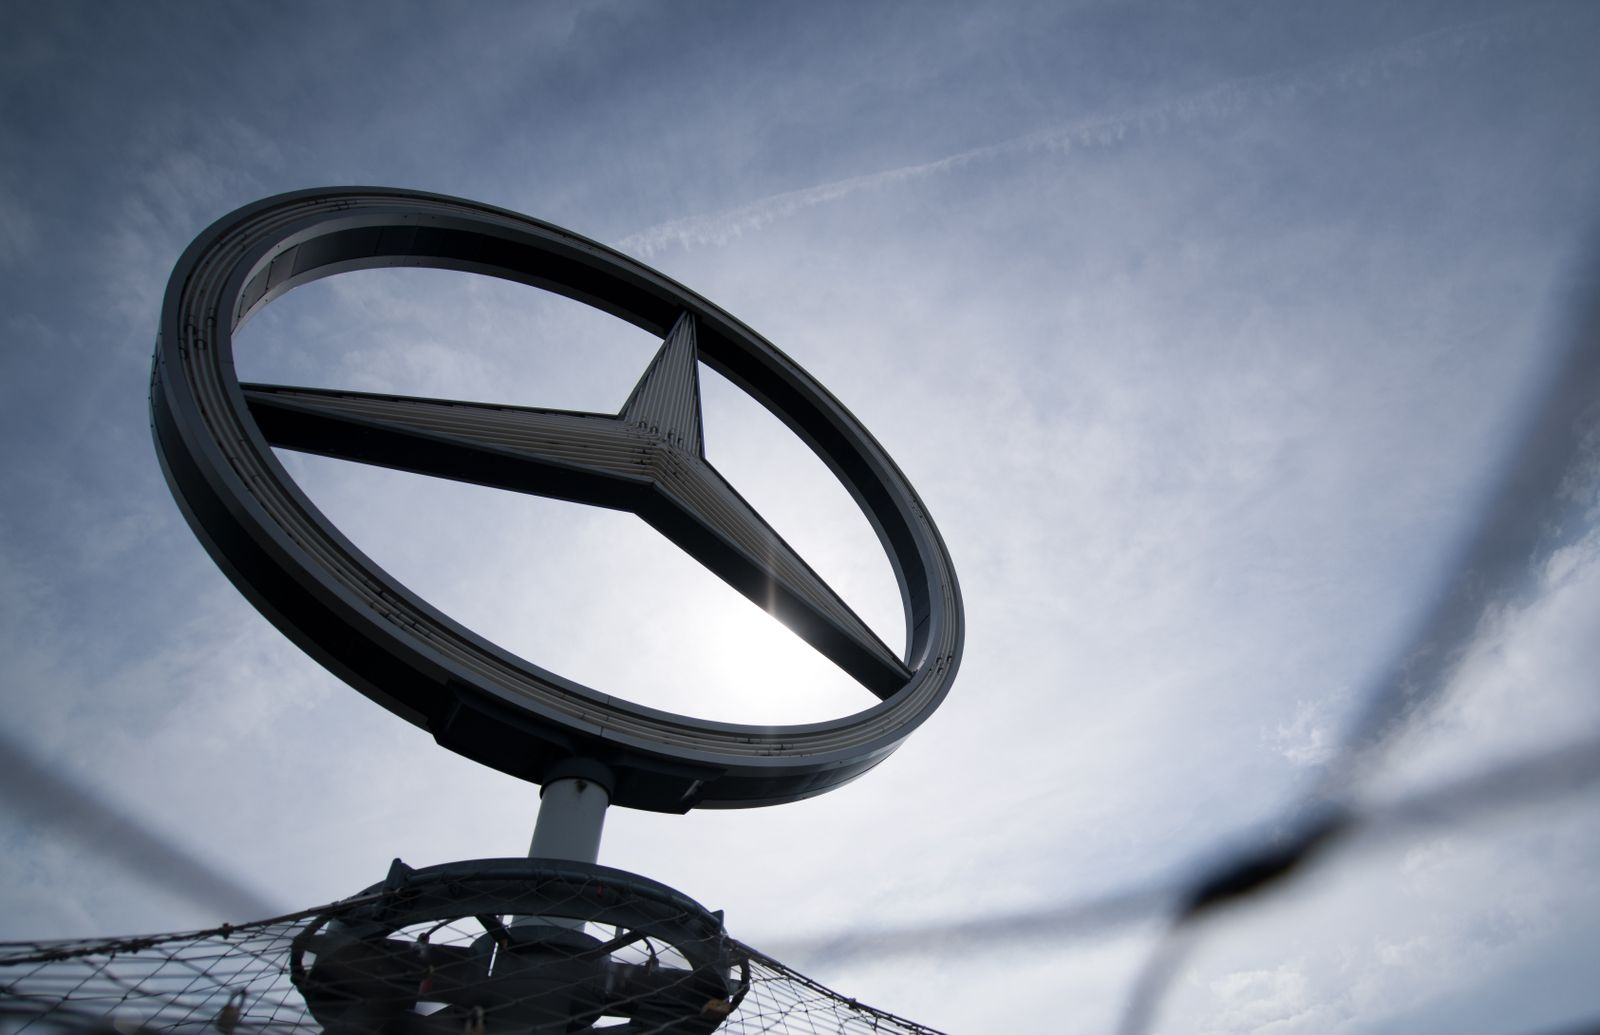 Software-Manipulation bei Daimler-Dieselautos/ GLK 220 CDI